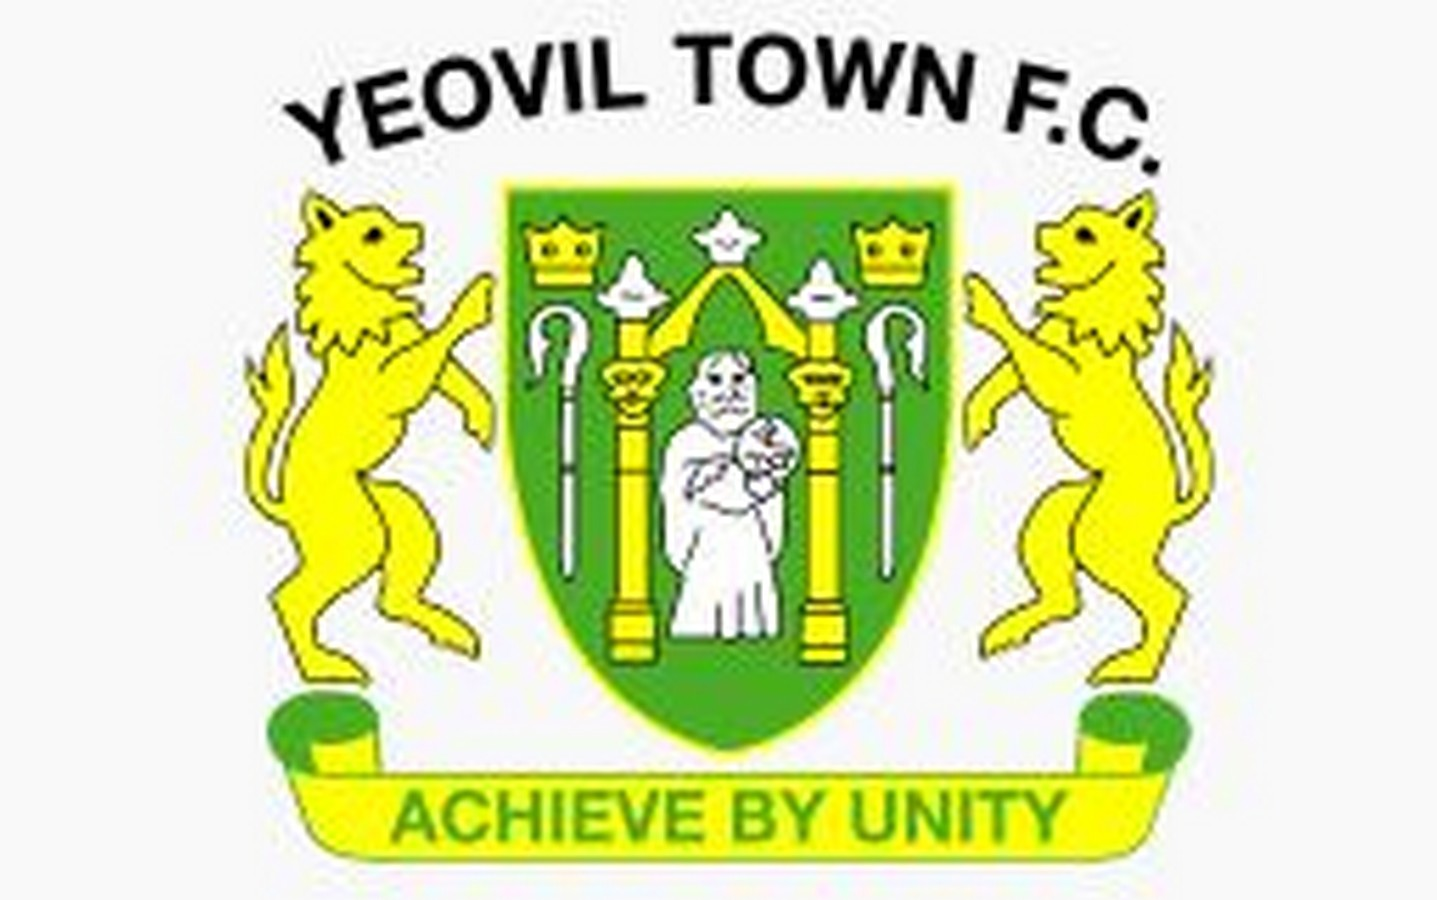 Yeovil Town FC VIP Package    - An amazing package for 4 guests at Yeovil Town  Yeovil Town FCis